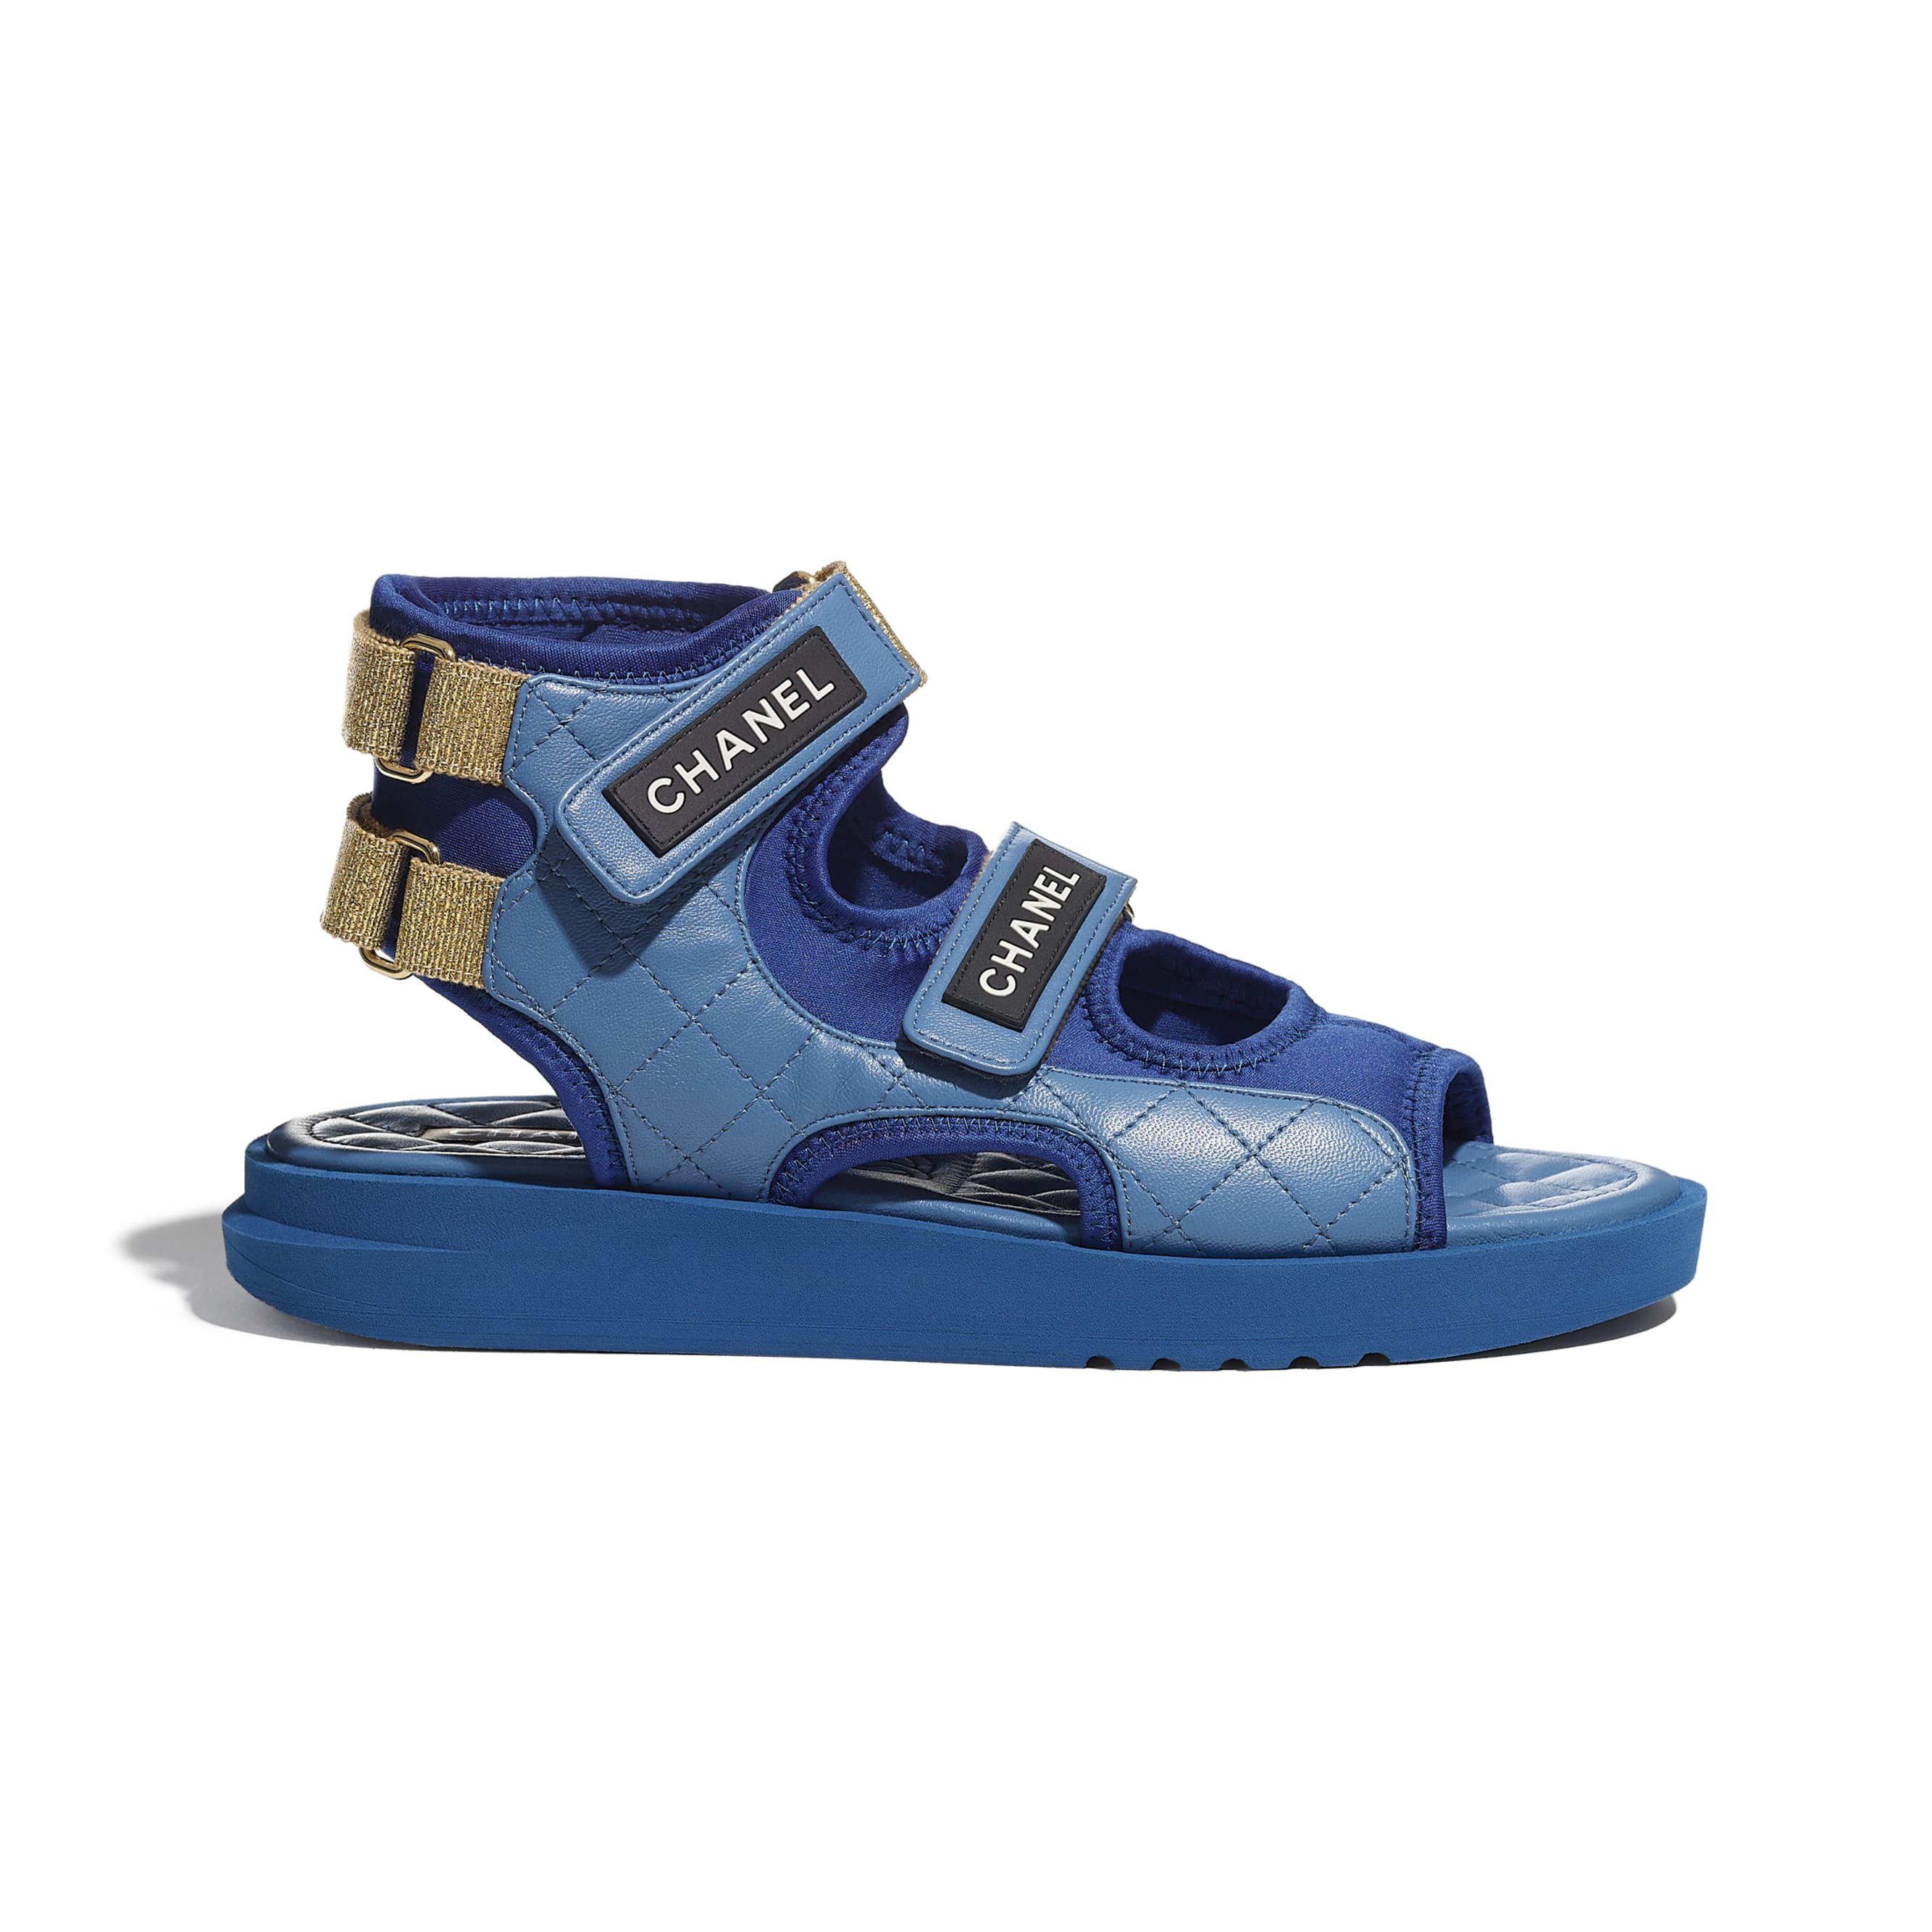 Sandals - Blue, Dark Blue & Black - Goatskin, Fabric & TPU - CHANEL - Default view - see standard sized version